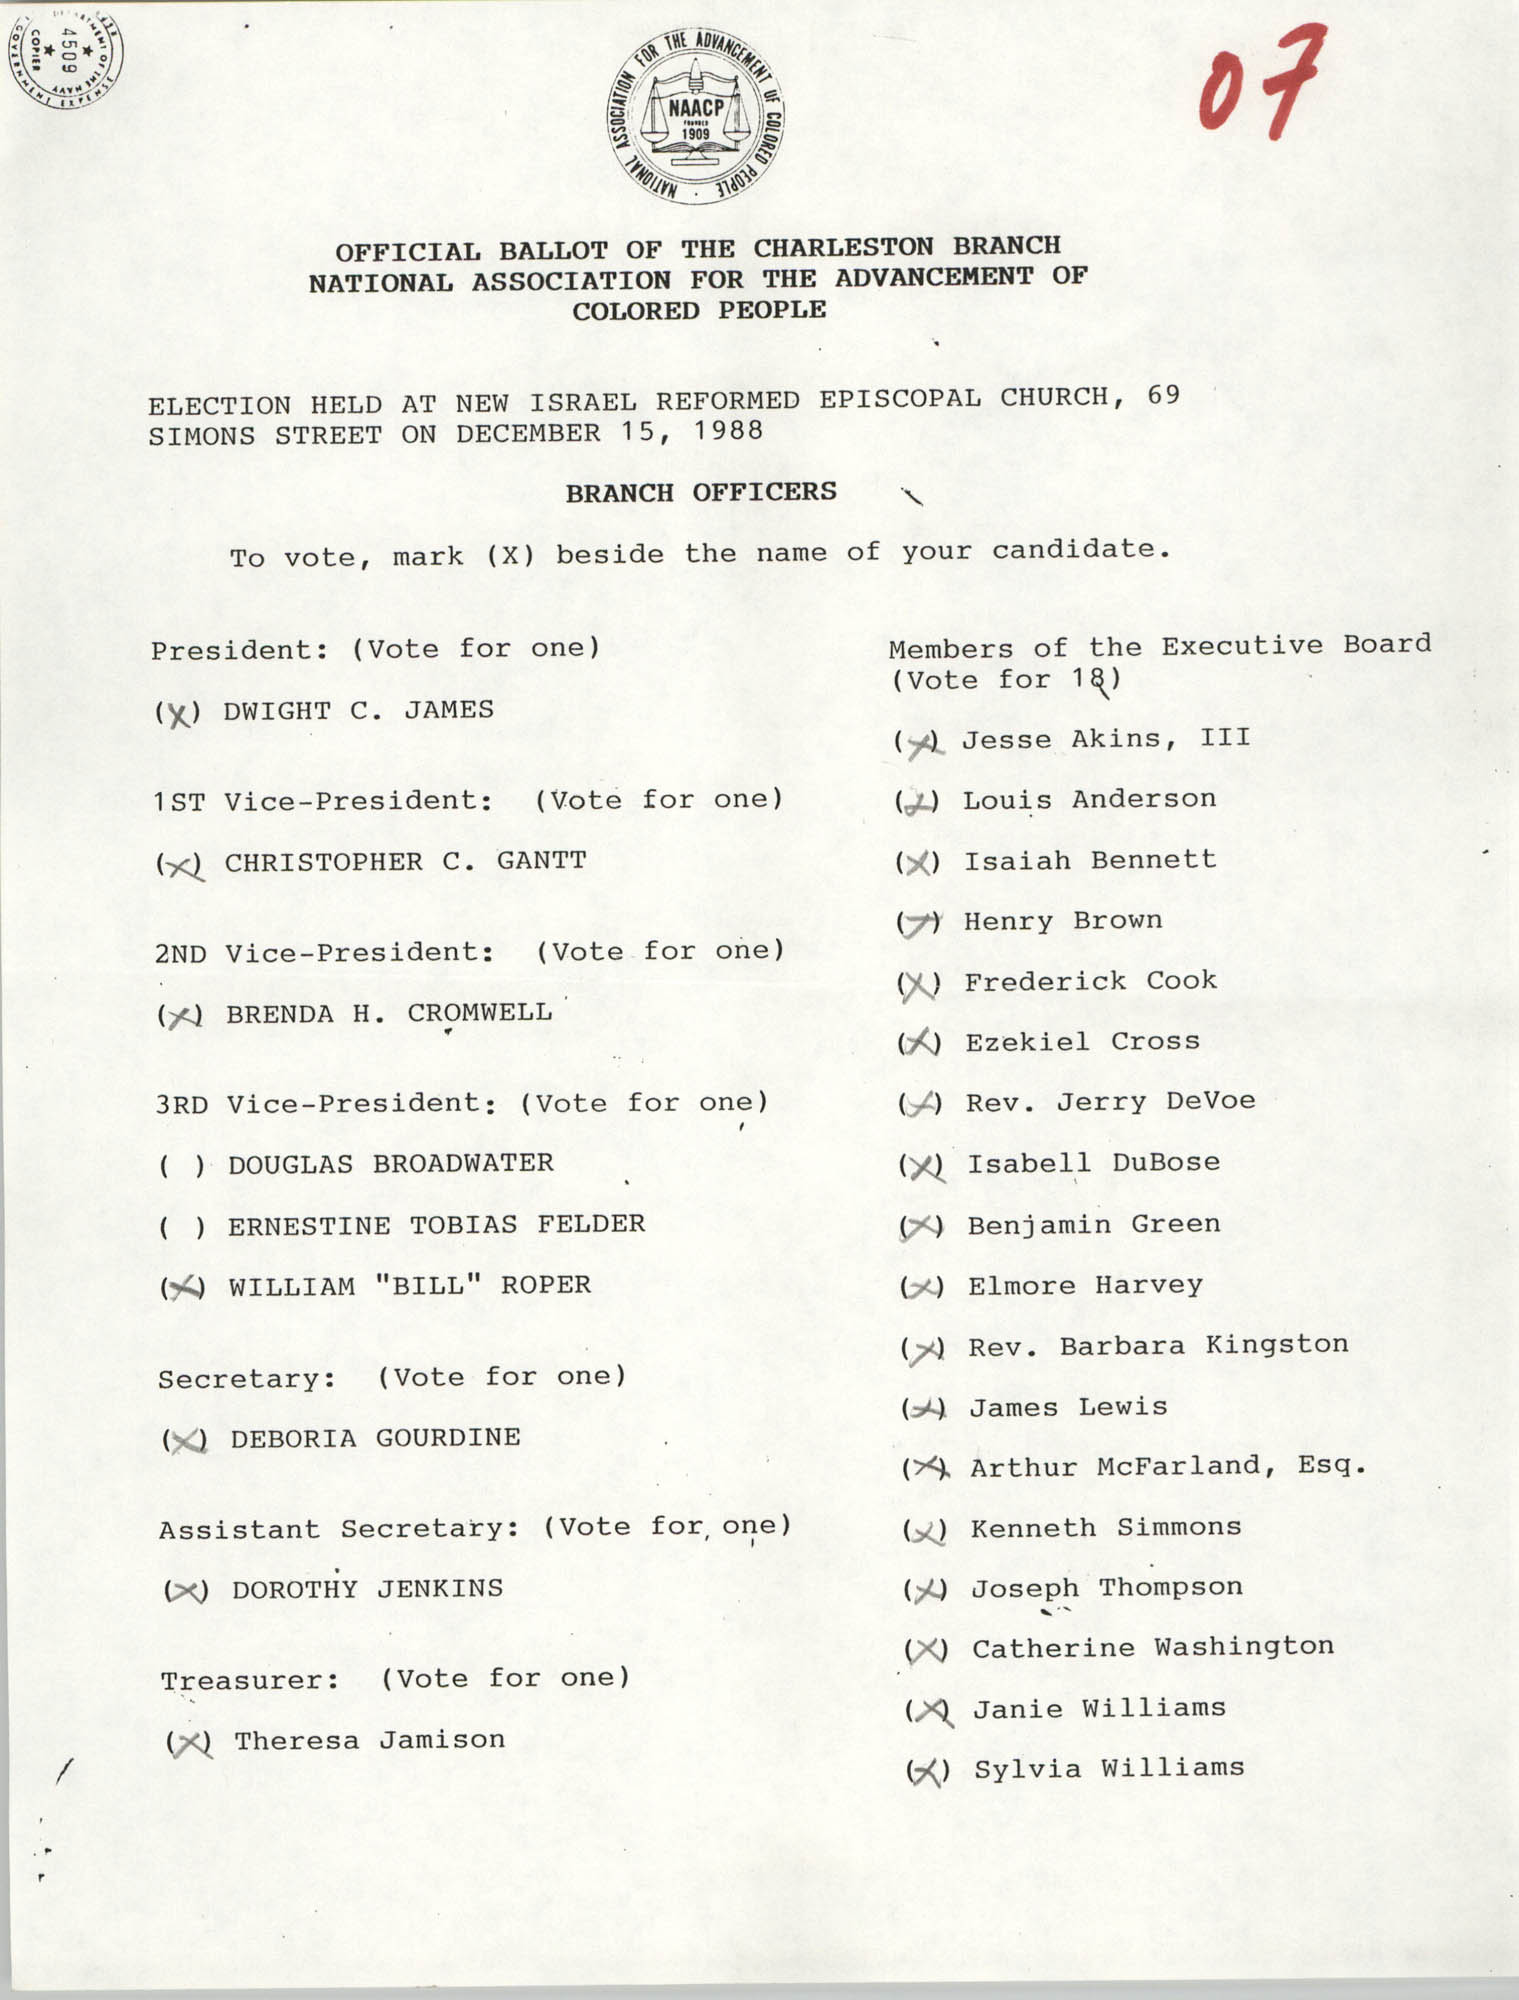 Official Ballot of the Charleston Branch of the NAACP, 07